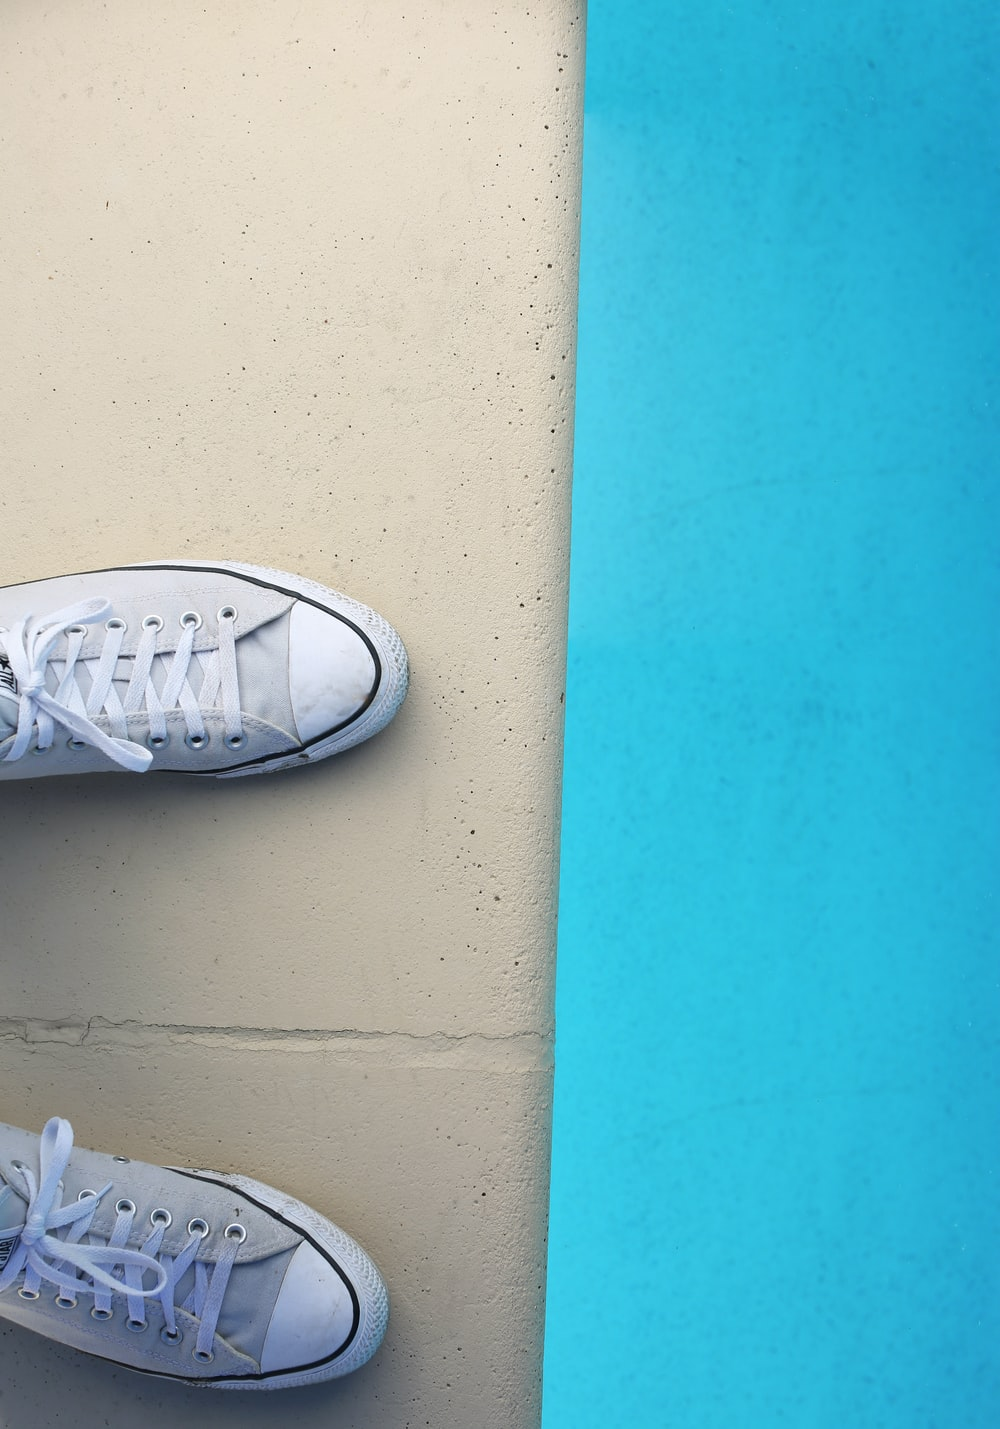 person wearing white low top sneakers